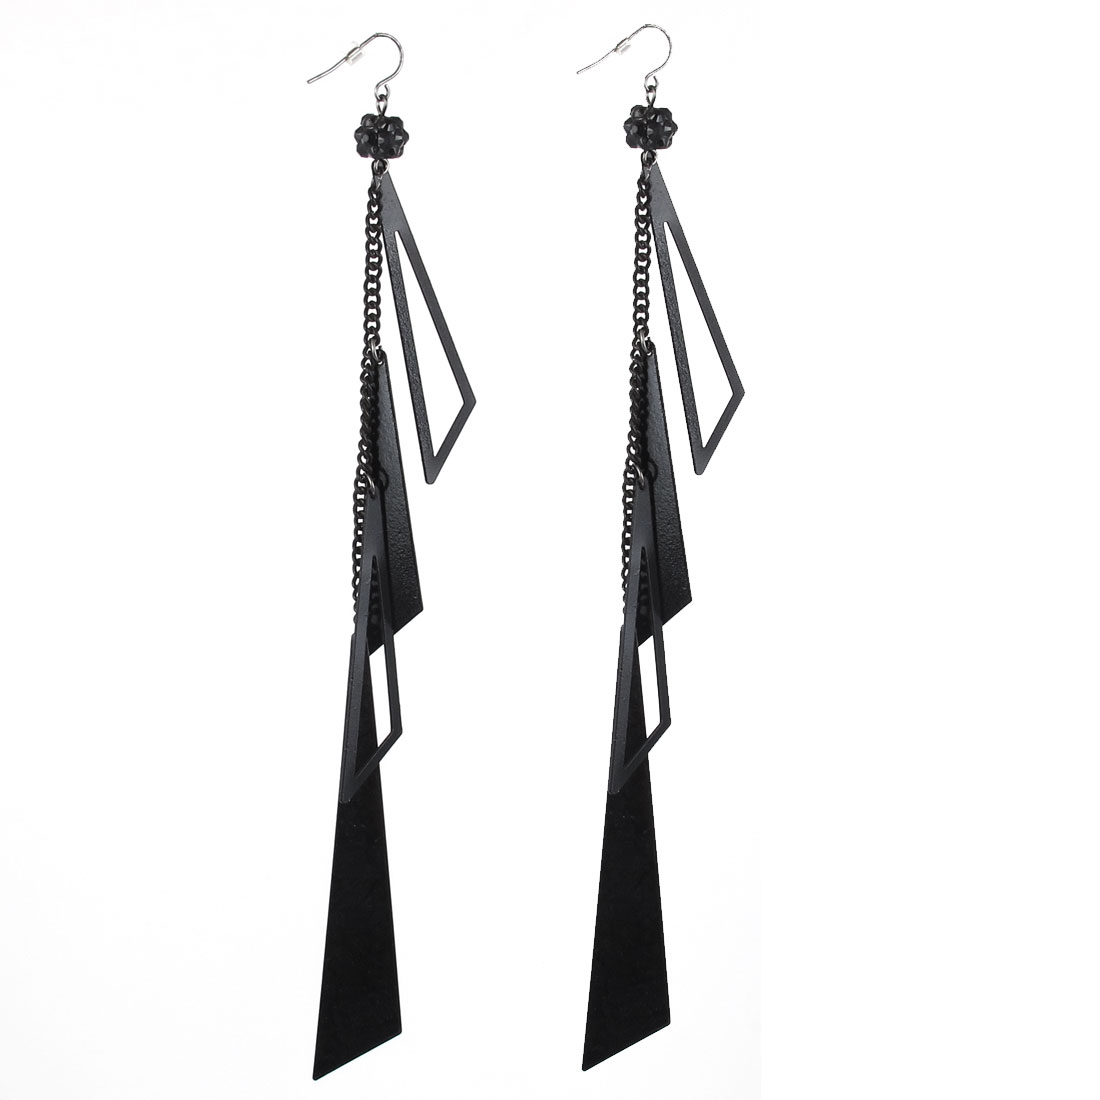 "7.5"" Length Black Metal Triangle Shape Stylish Smooth Surface Dangling Pendants Hook Earrings Earbobs Pair for Lady Women"